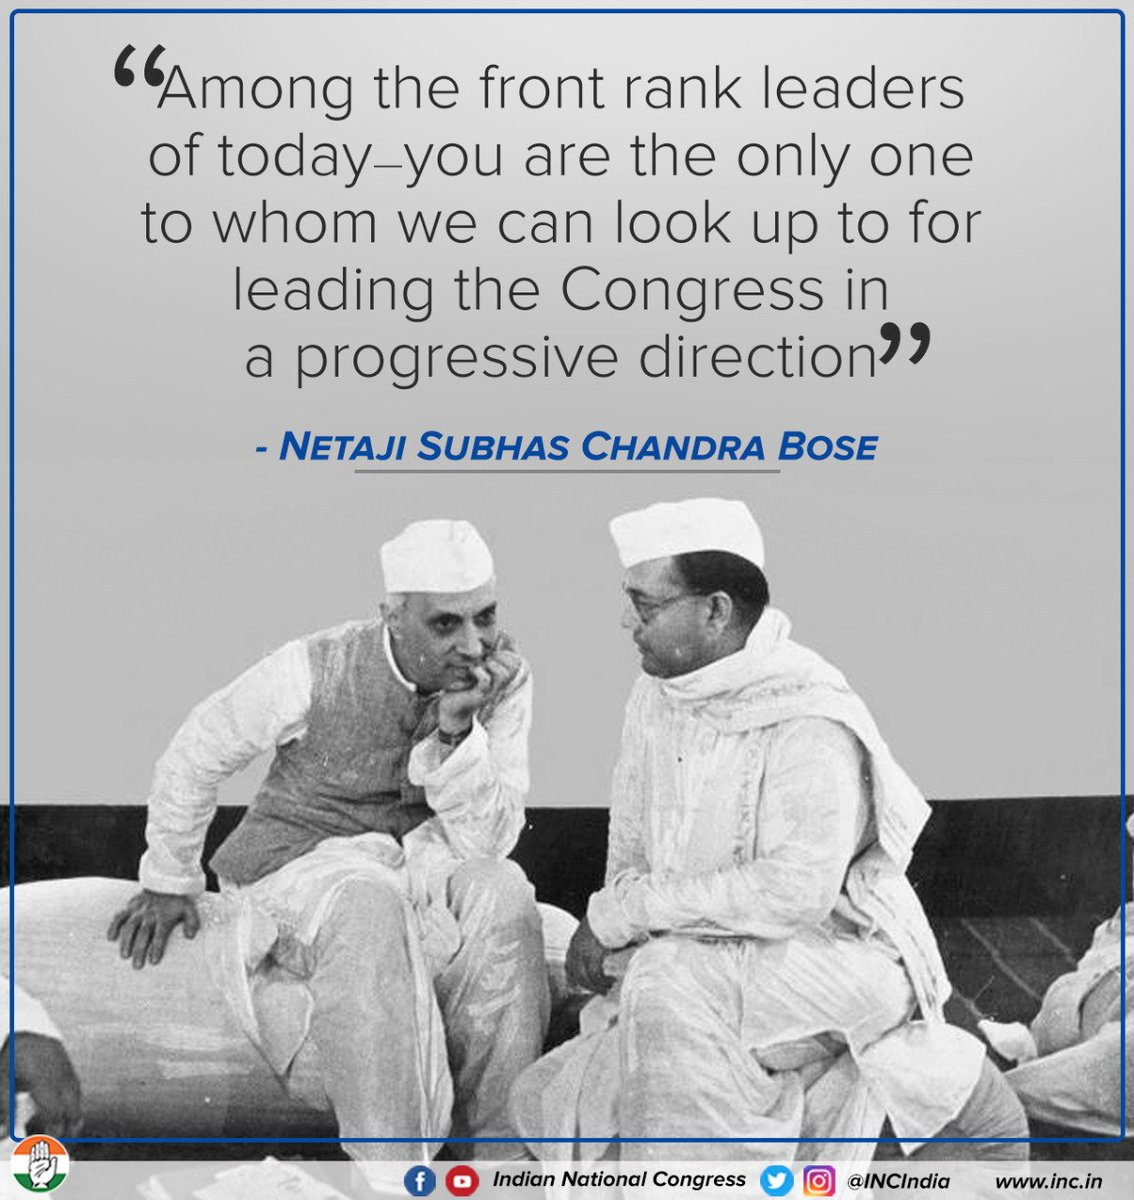 The relationship shared between Netaji Subhas Chandra Bose & Pt. Jawaharlal Nehru was that of mutual respect, intellectual parity & a friendship that would withstand time.   #RememberingNehru